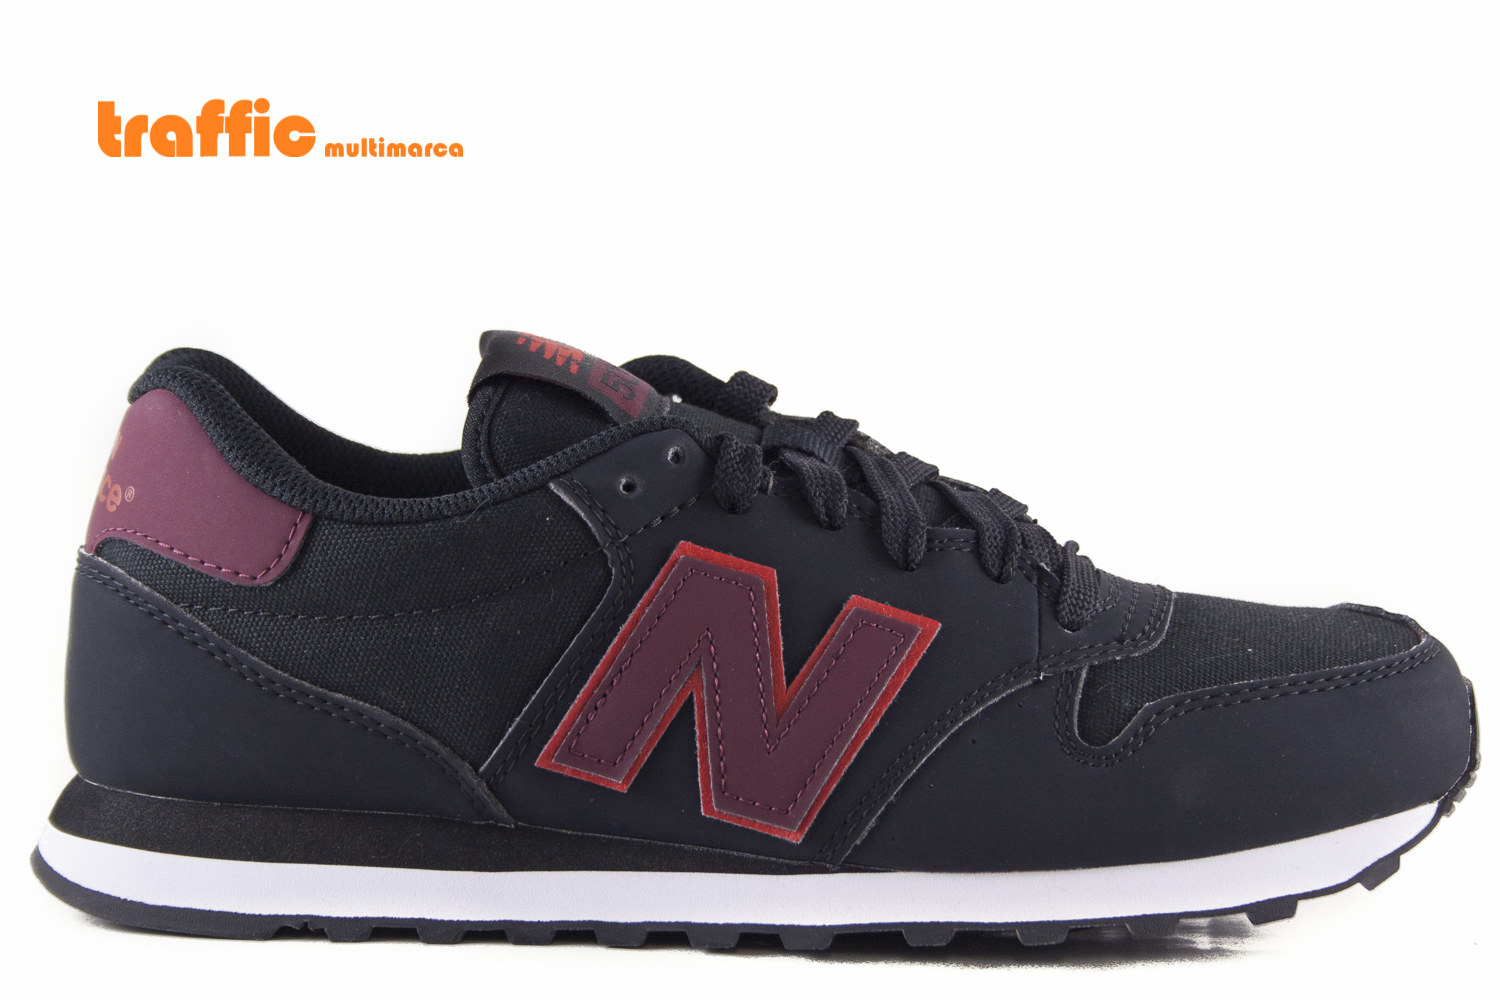 NEW BALANCE HOMBRE GM500 CLASICO | Traffic Marcas